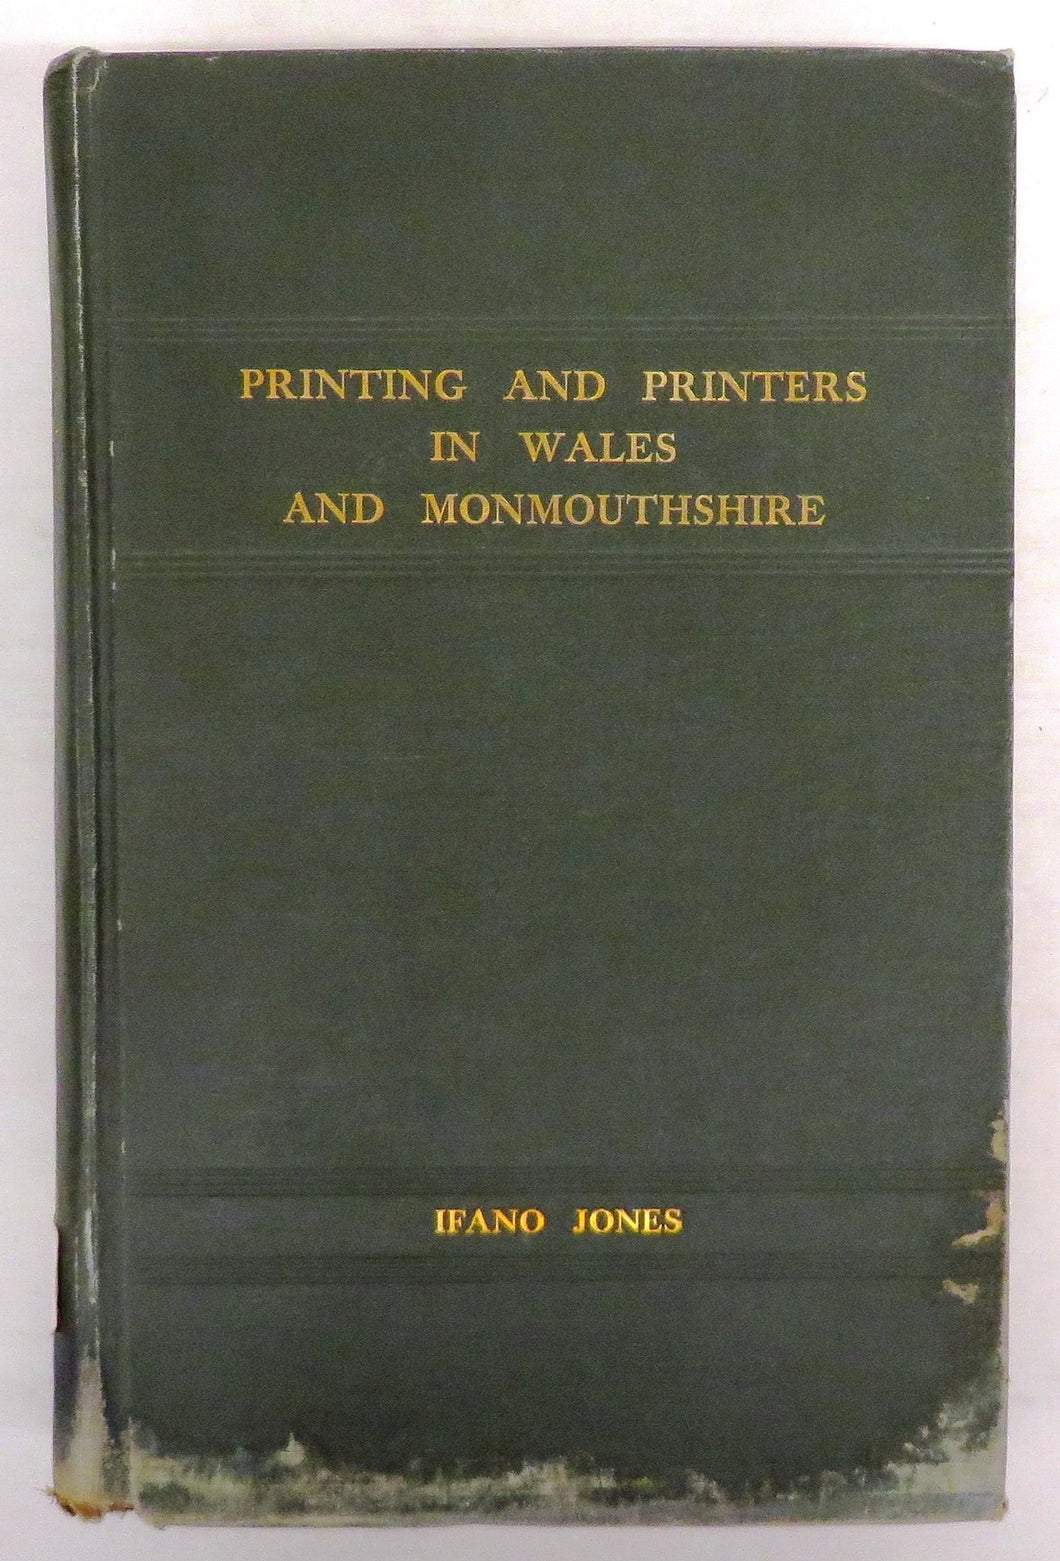 A History of Printing and Printers in Wales to 1810, and of Successive and Related Printers to 1923, Also, A History of Printing and Printers in Monmouthshire to 1923